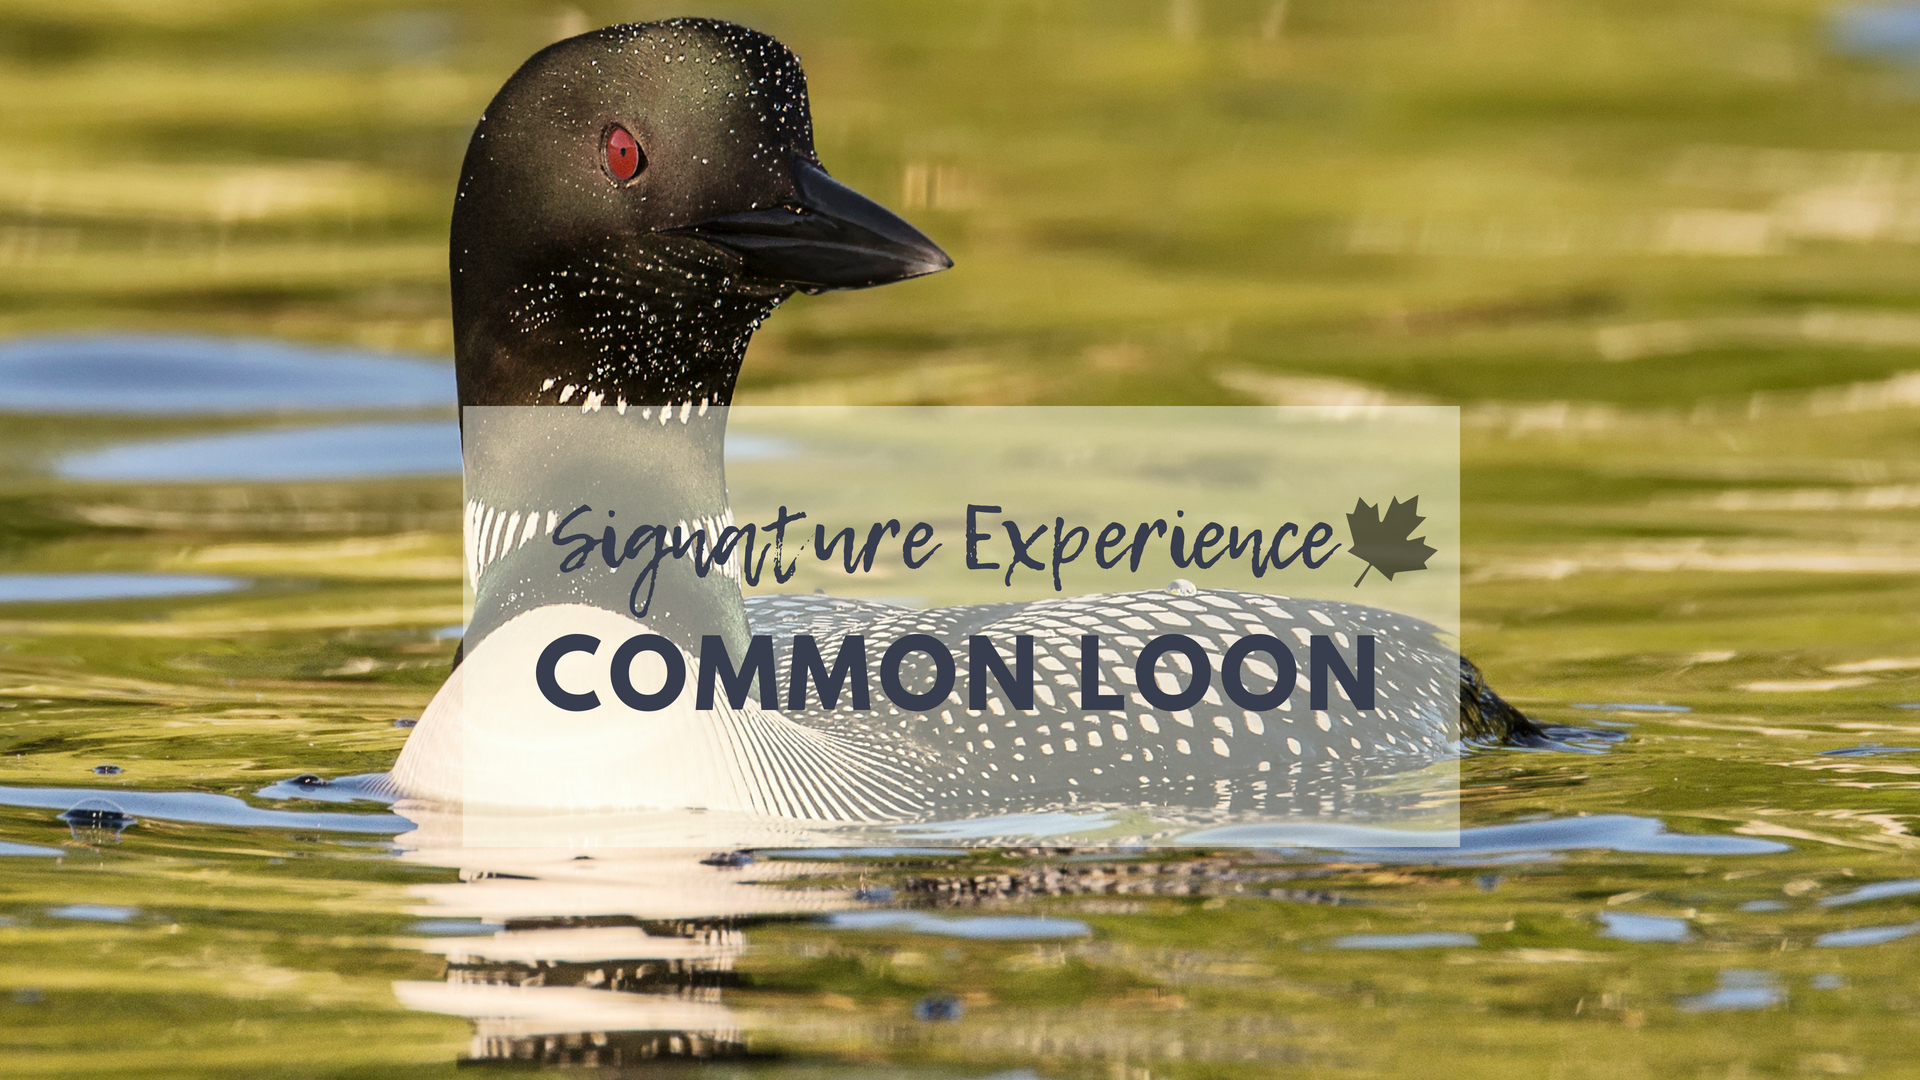 North of 49 Signature common loon photography workshop - MULTIPLE DATES AVAILABLE THROUGH OUT THE SUMMER SEASON